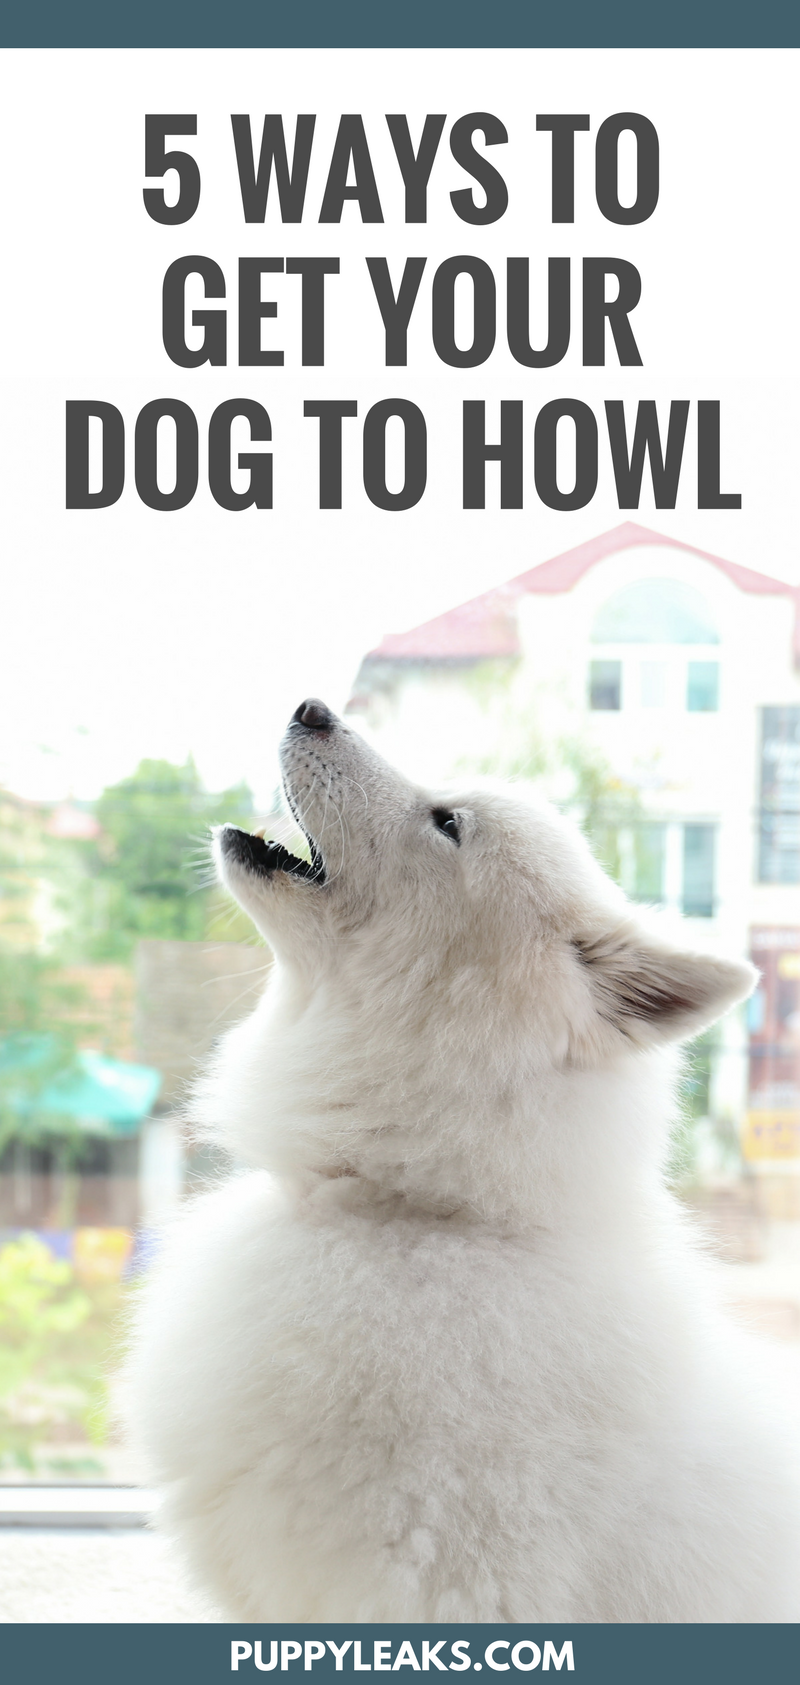 How To Make A Dog Howl On Command